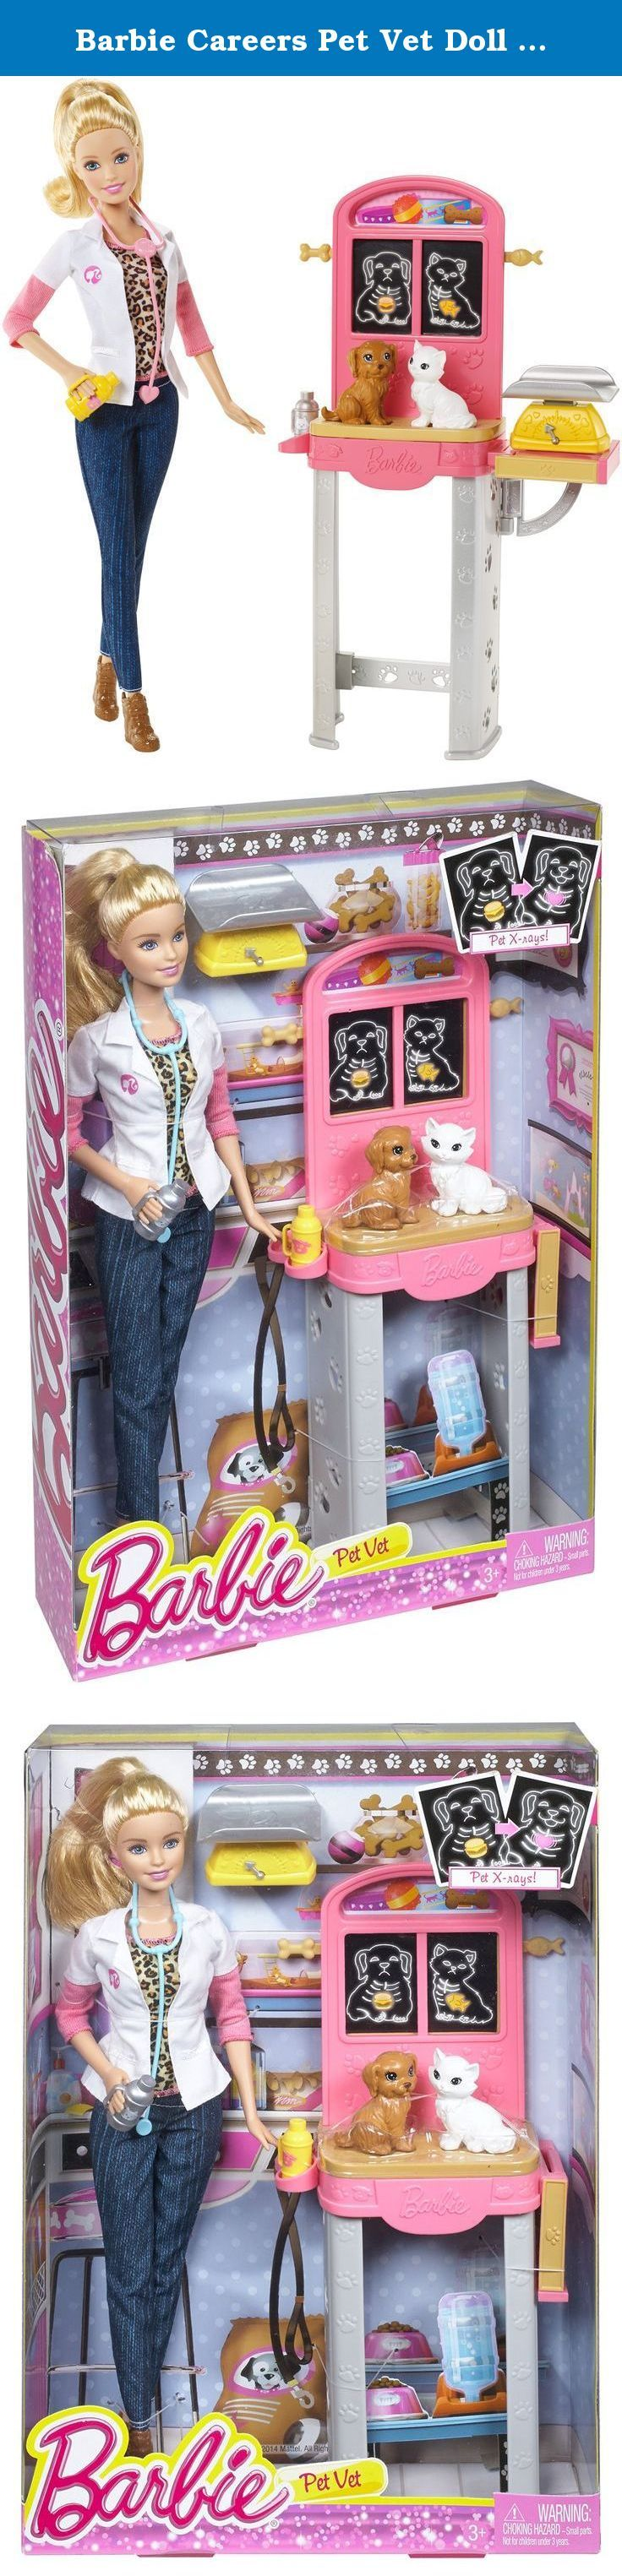 Barbie Careers Pet Vet Doll and Playset. Explore new careers in depth with the Barbie Careers complete play sets. From medicine to teaching, these focused females make anything possible! The Barbie Careers Complete Play Pet Vet set will drive animal lovers wild! It comes with both an adorable white kitten and sweet brown puppy as patients. Place them on the examination table with its x-ray chart that slides up and down to reveal the patients' scans. Barbie doll can weigh them in the scale...